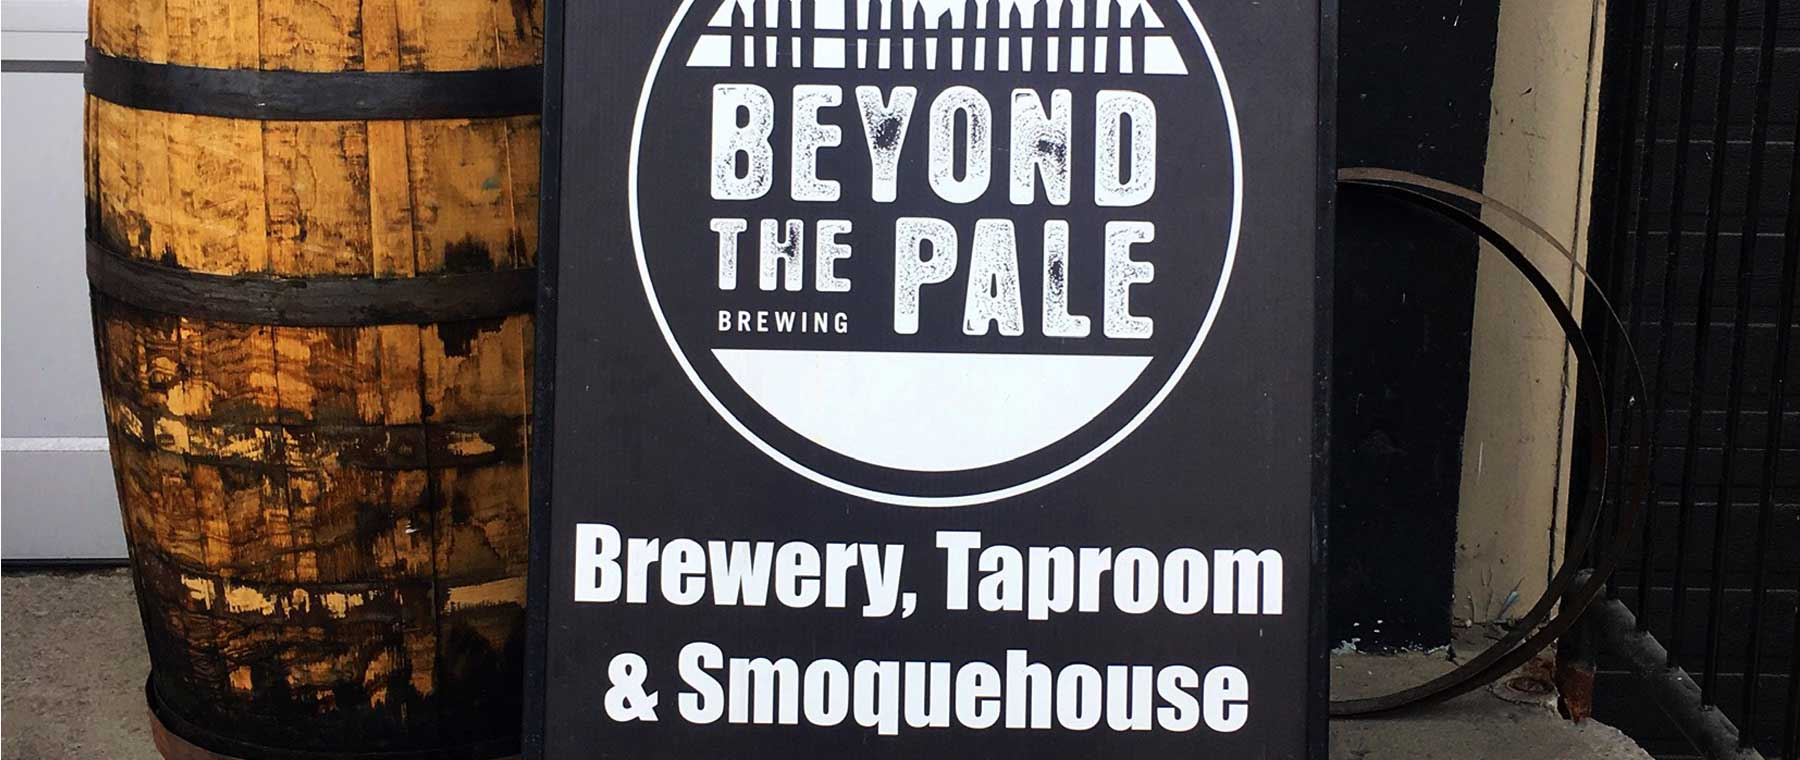 Beyond the Pale expansion includes new Smoquehouse menu offerings